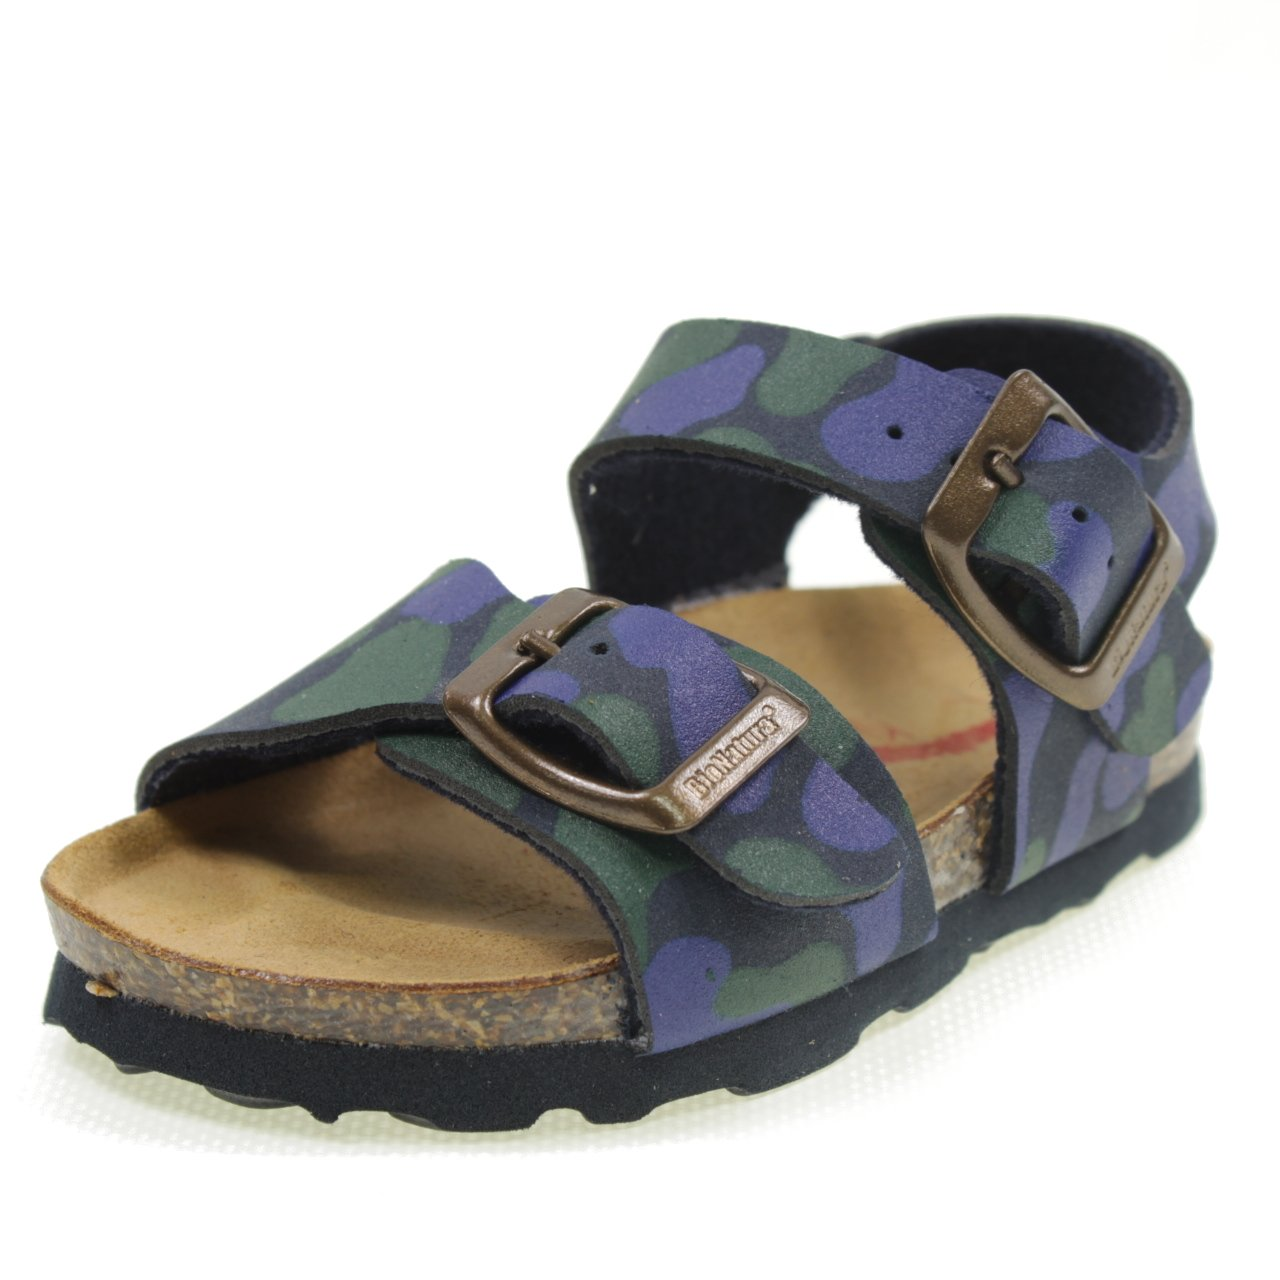 los angeles detailed images pick up Bionatura Sandales avec Boucles Type Birk MIMETIQUE Made in ...